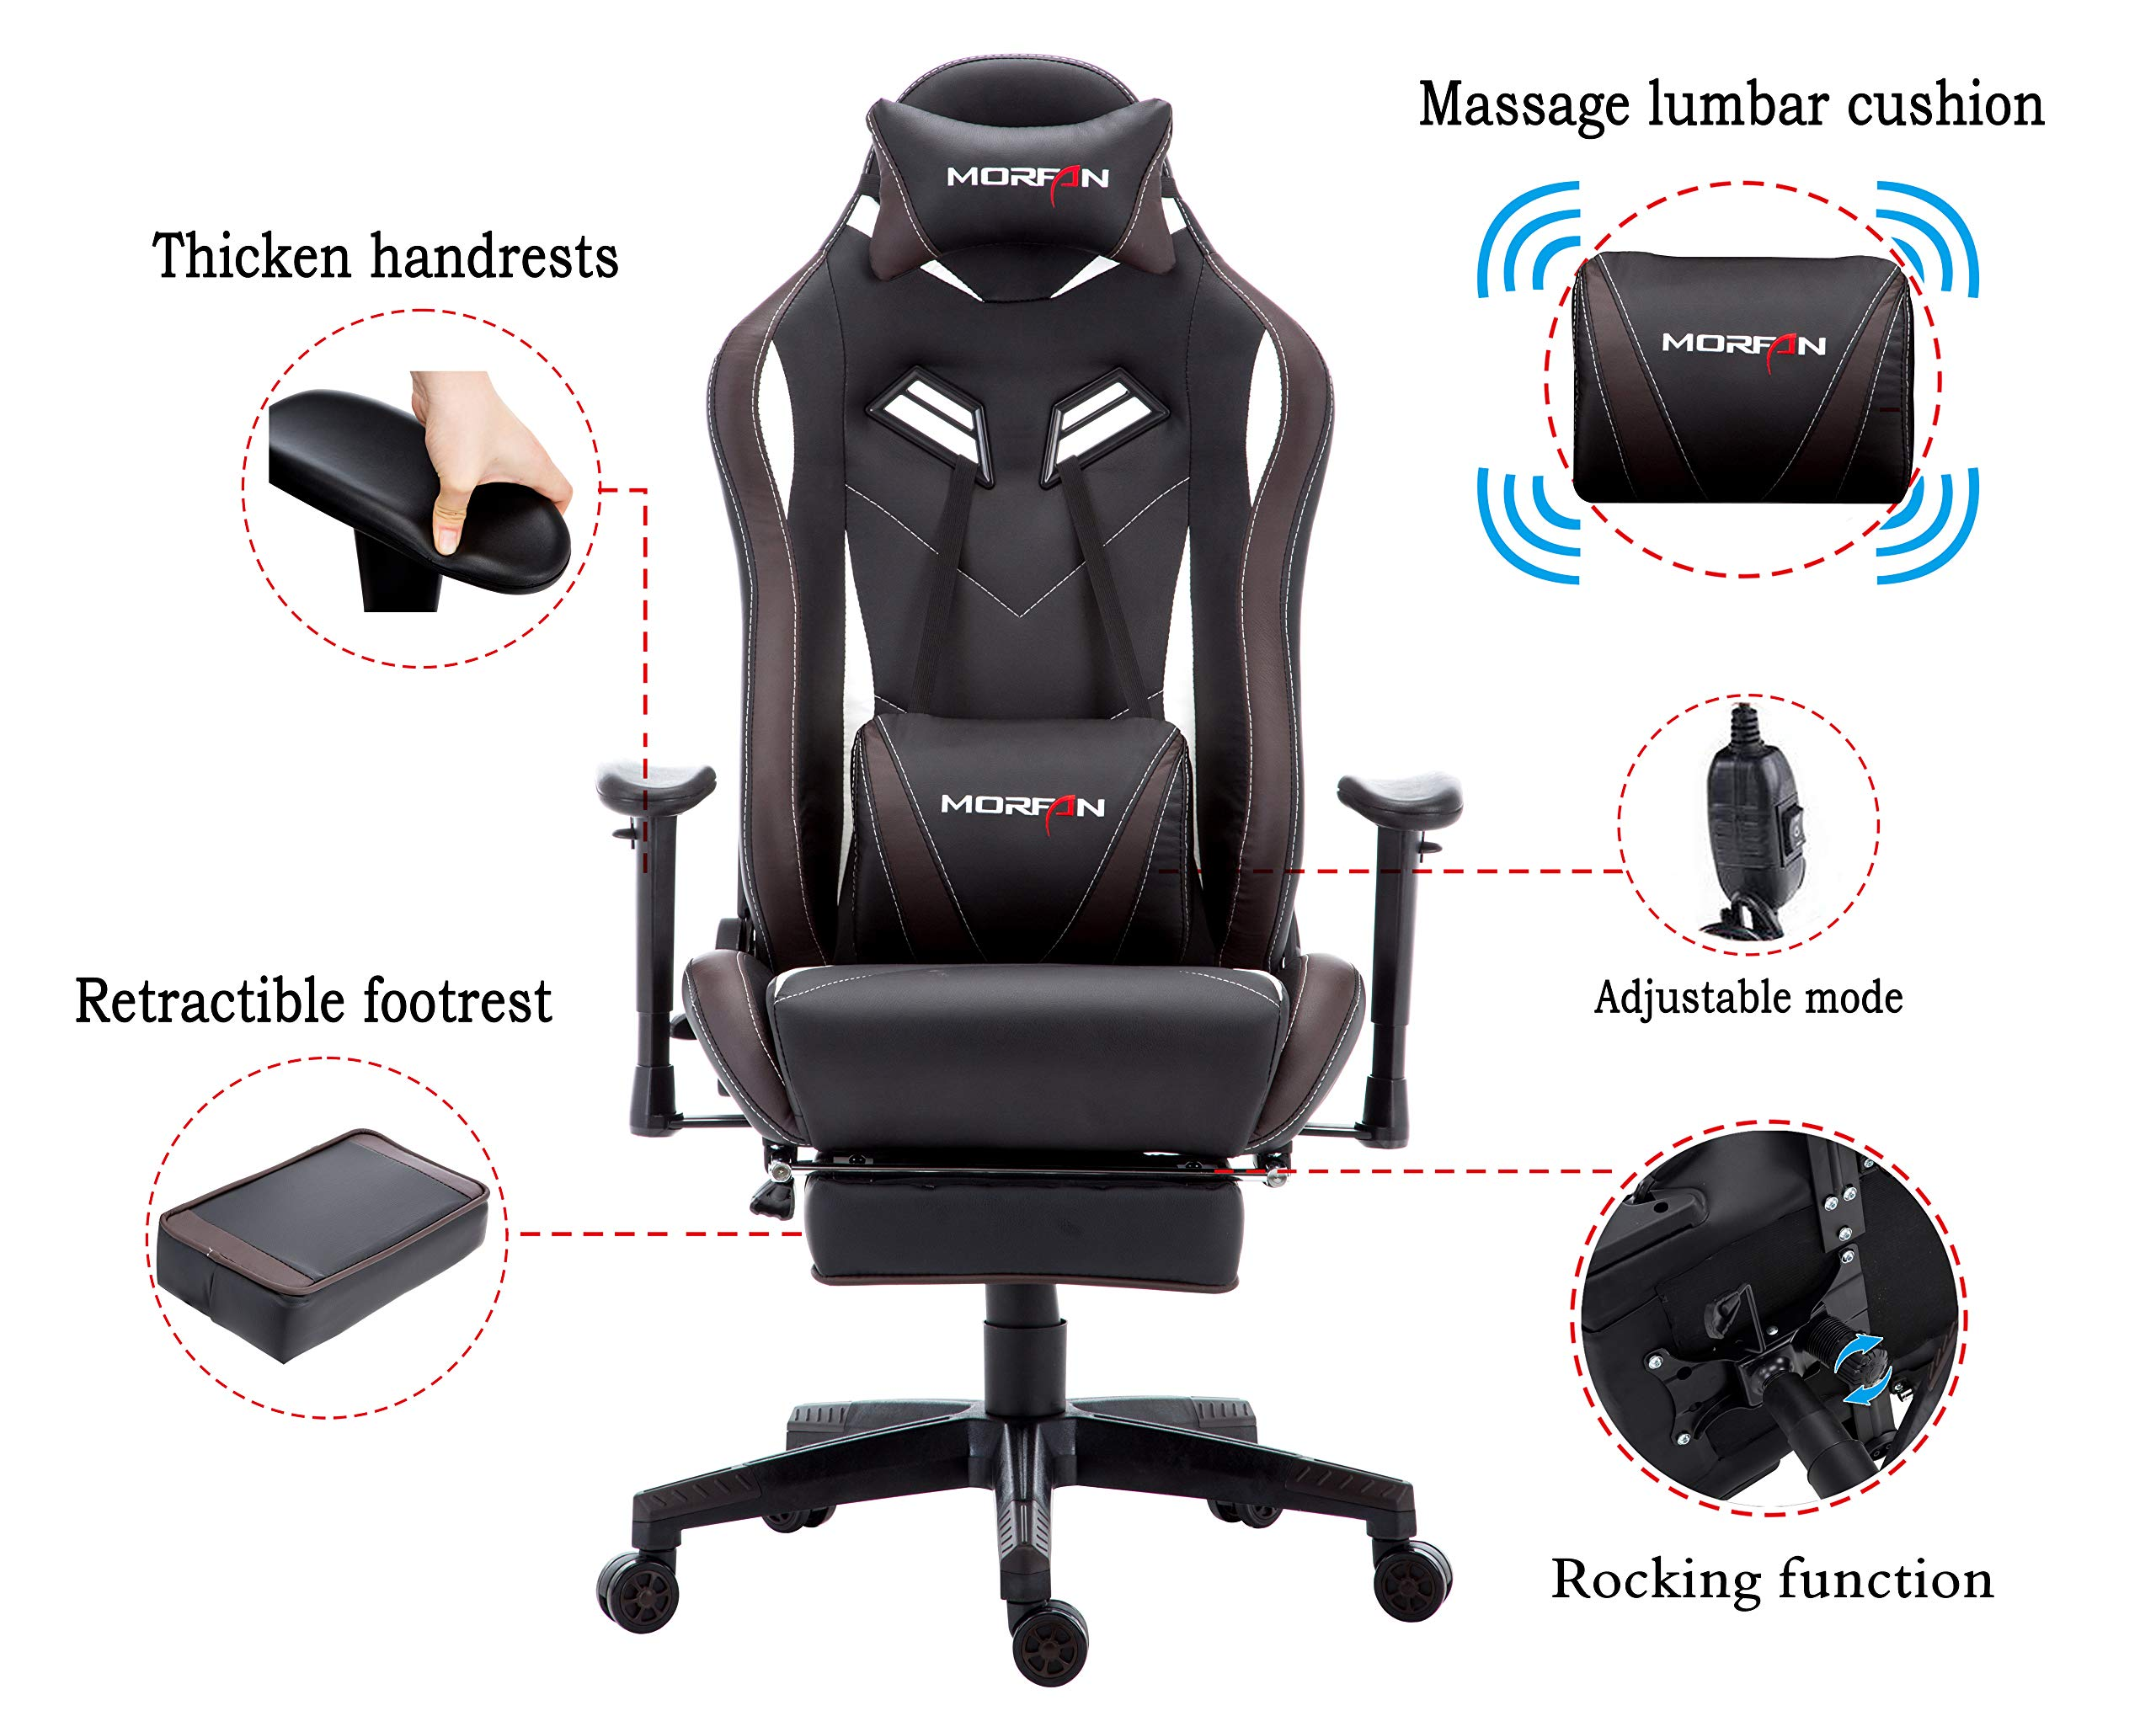 Morfan Gaming Chair Large Size Massage Function Ergonomic Racing Style PC Computer Office Chair with Retractable Footrest & Adjustable Lumbar and Headrest Pillows (Black/Brown) by MORFAN (Image #3)